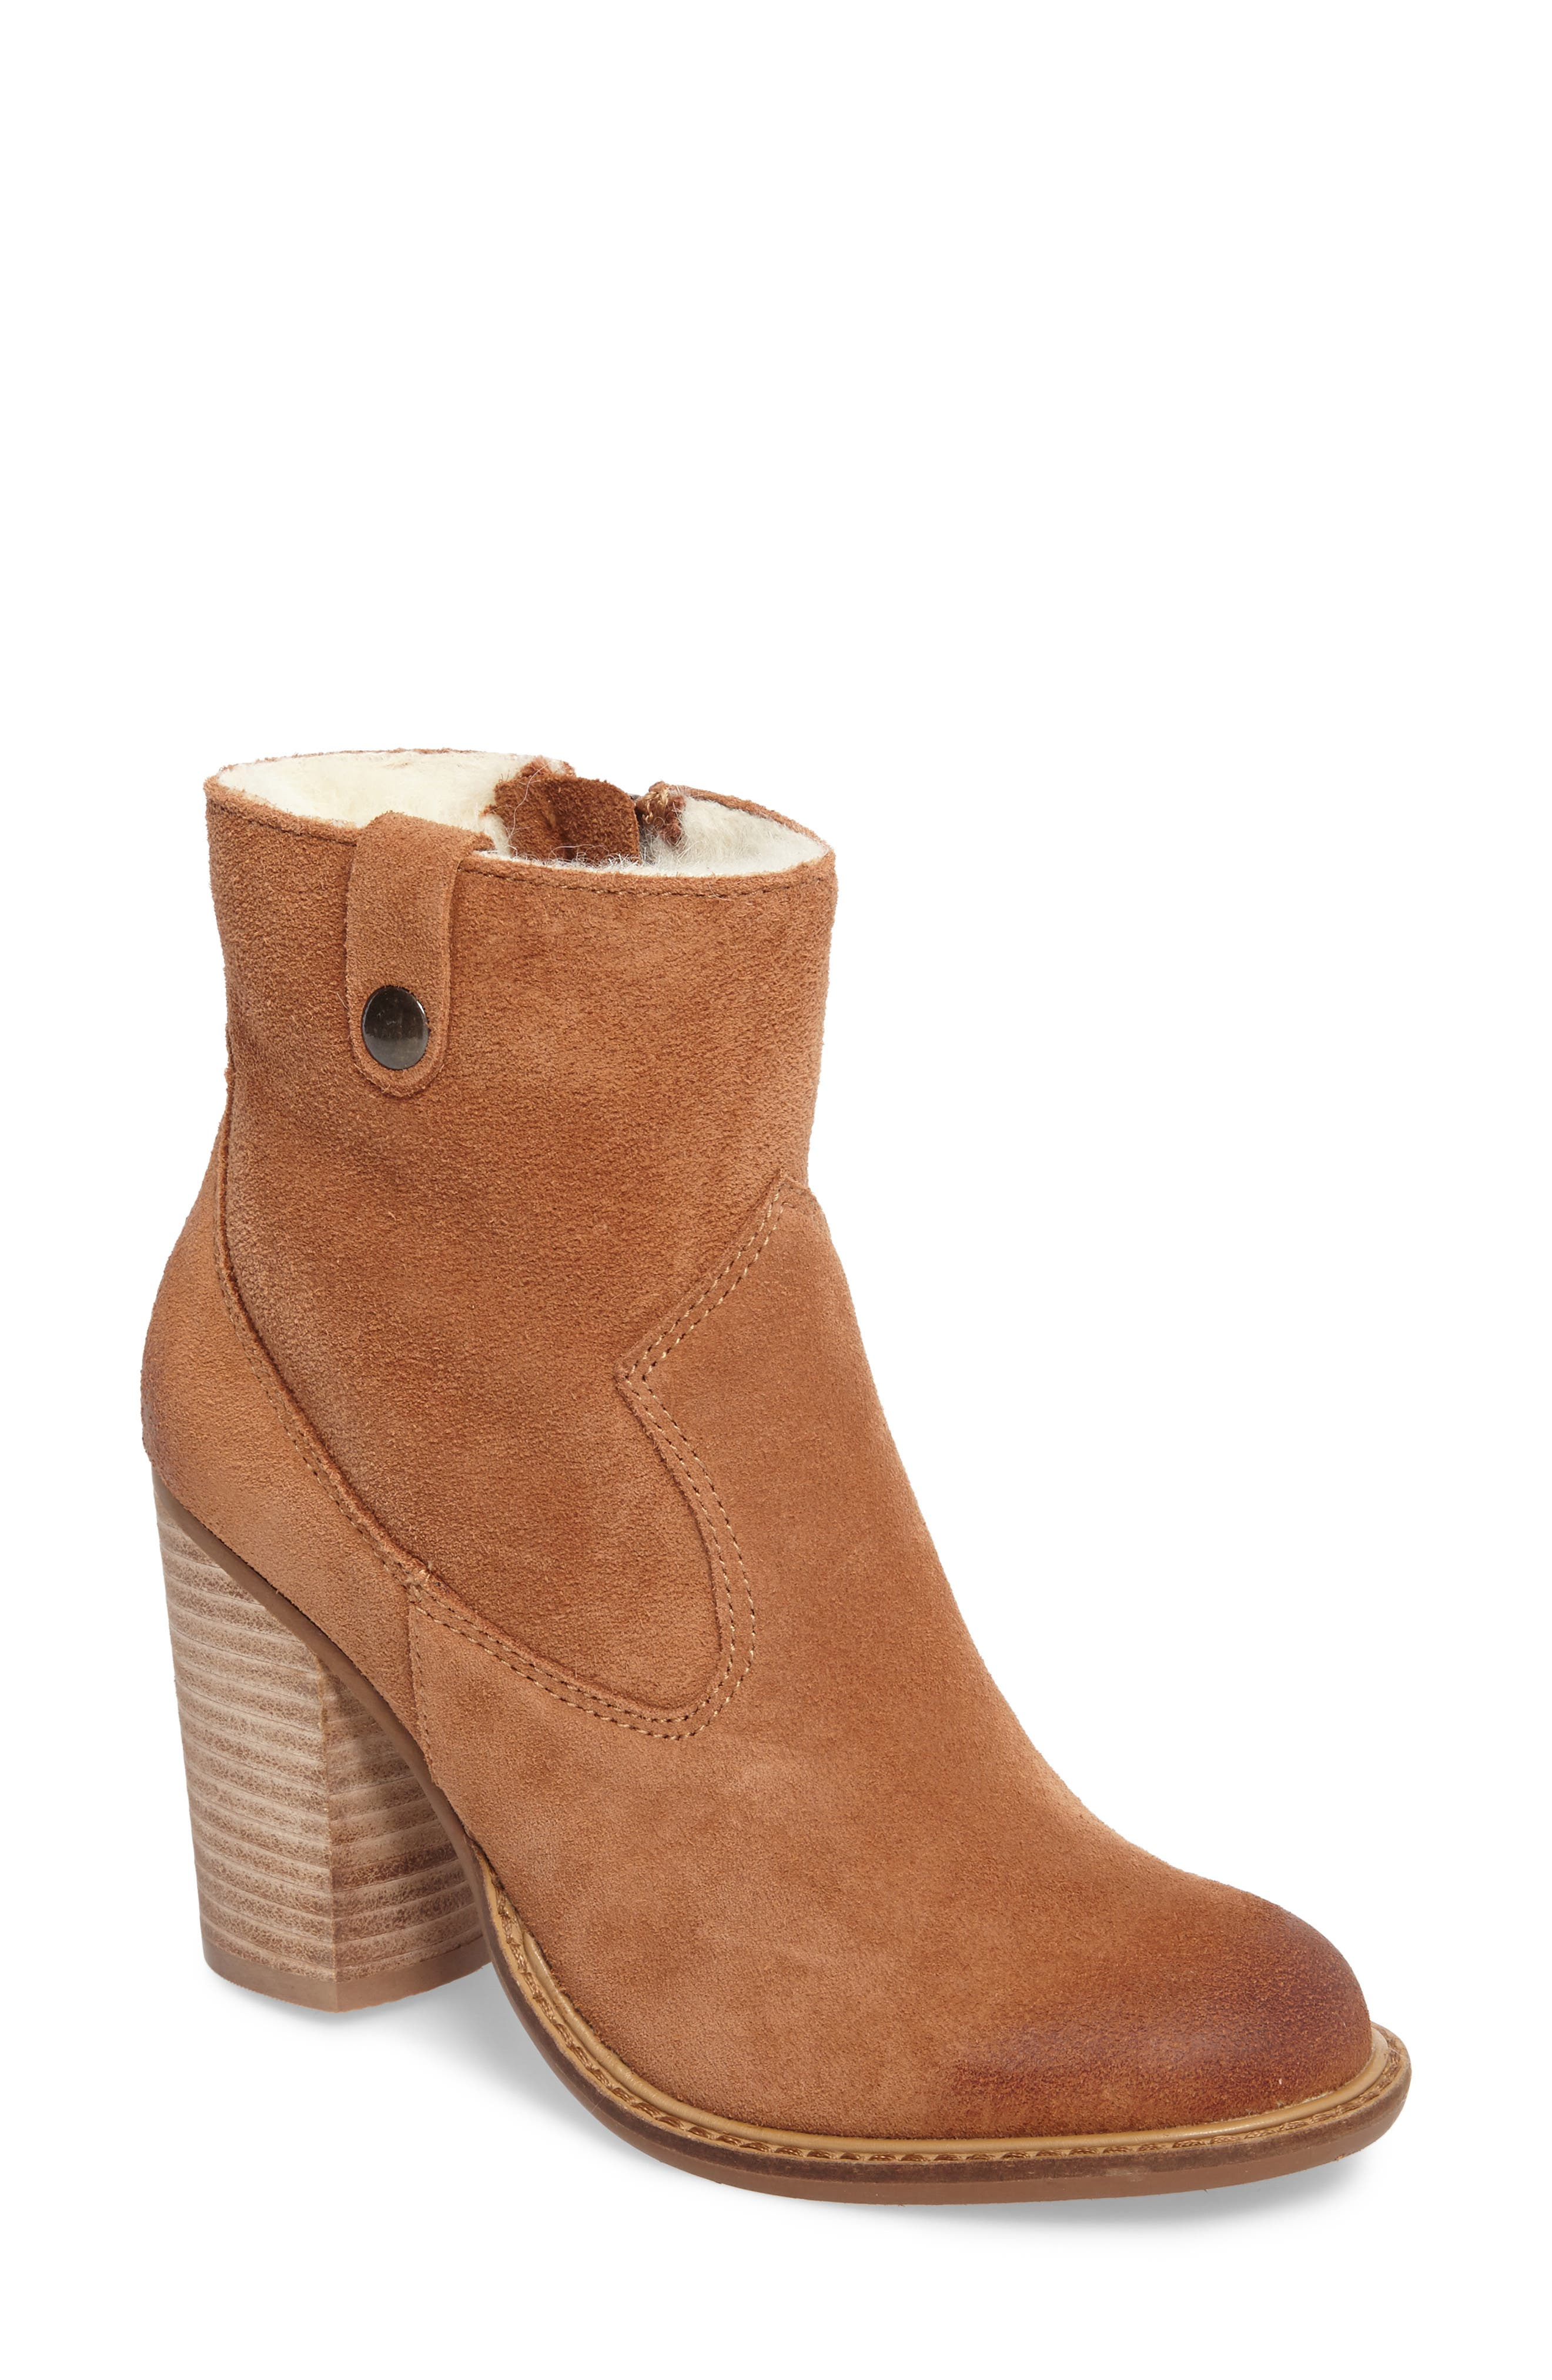 Kelsi Dagger Brooklyn Legion Bootie with Faux Shearling Lining (Women)